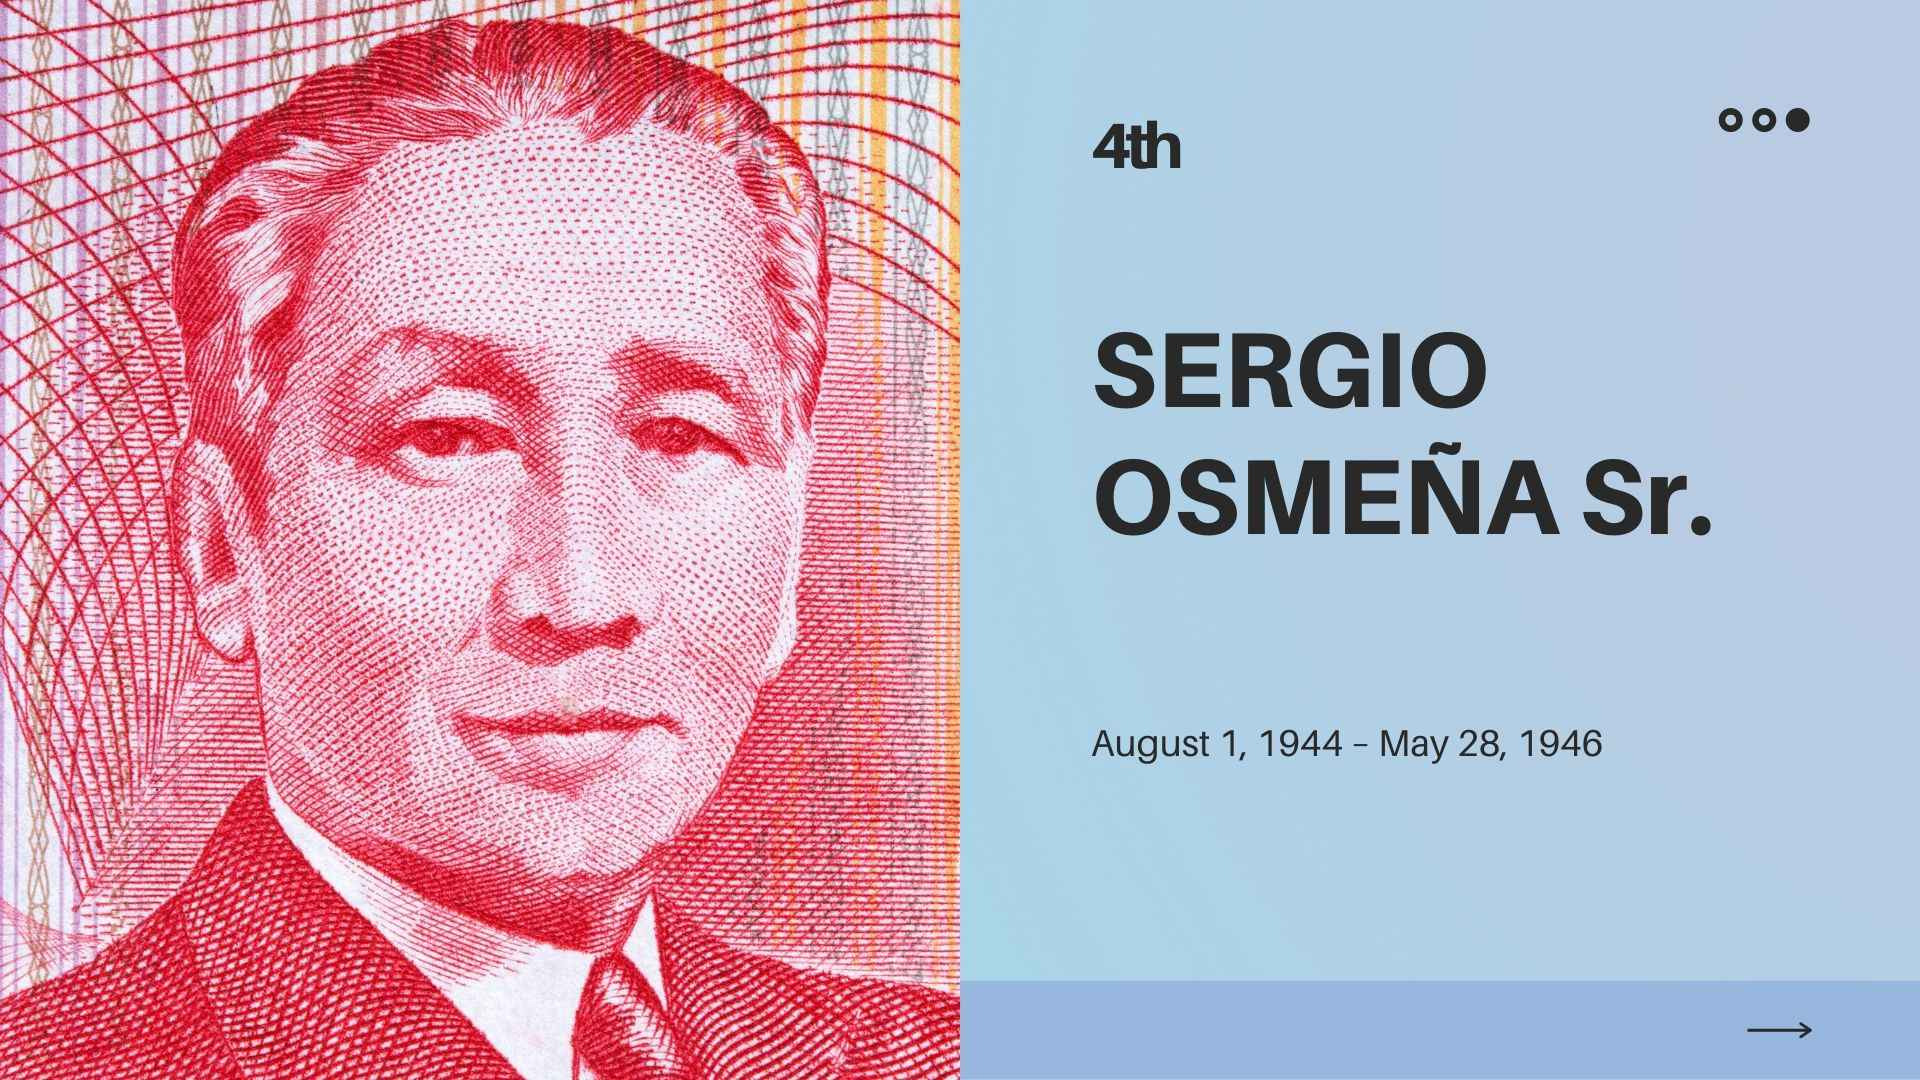 sergio osmena president of the philippines contributions